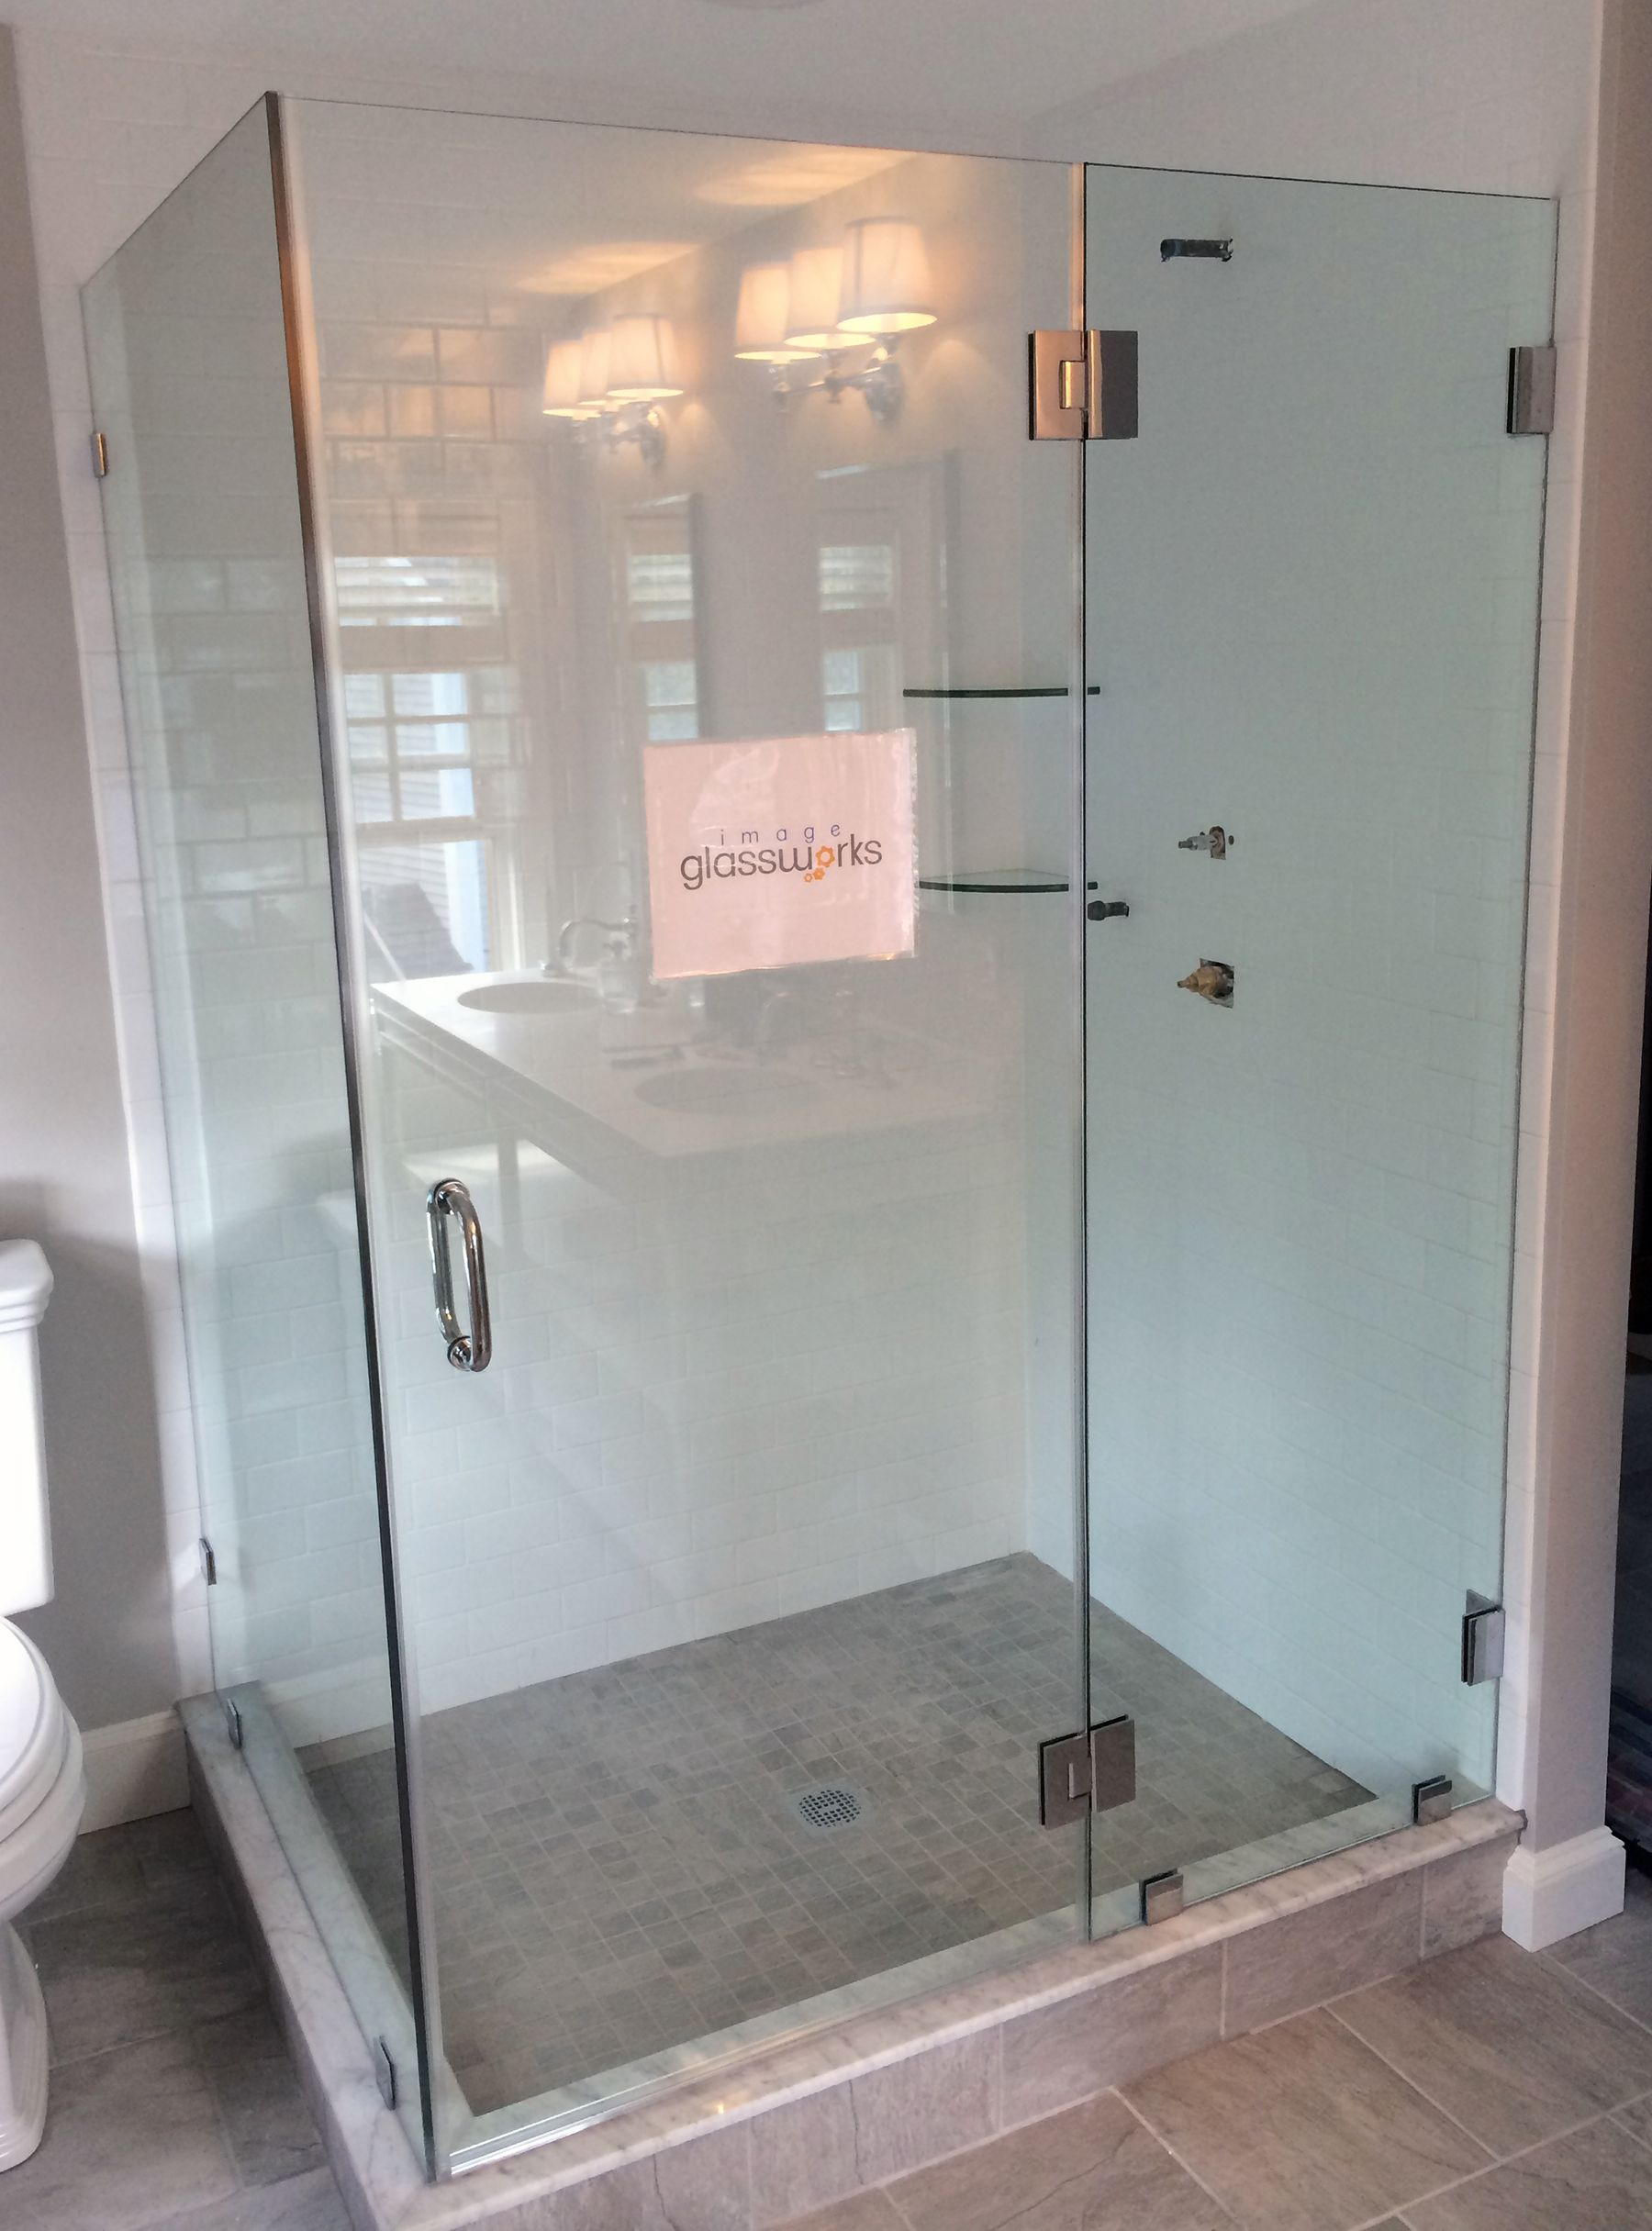 A Frameless Swinging Shower Door Hinged From The Stationary Panel